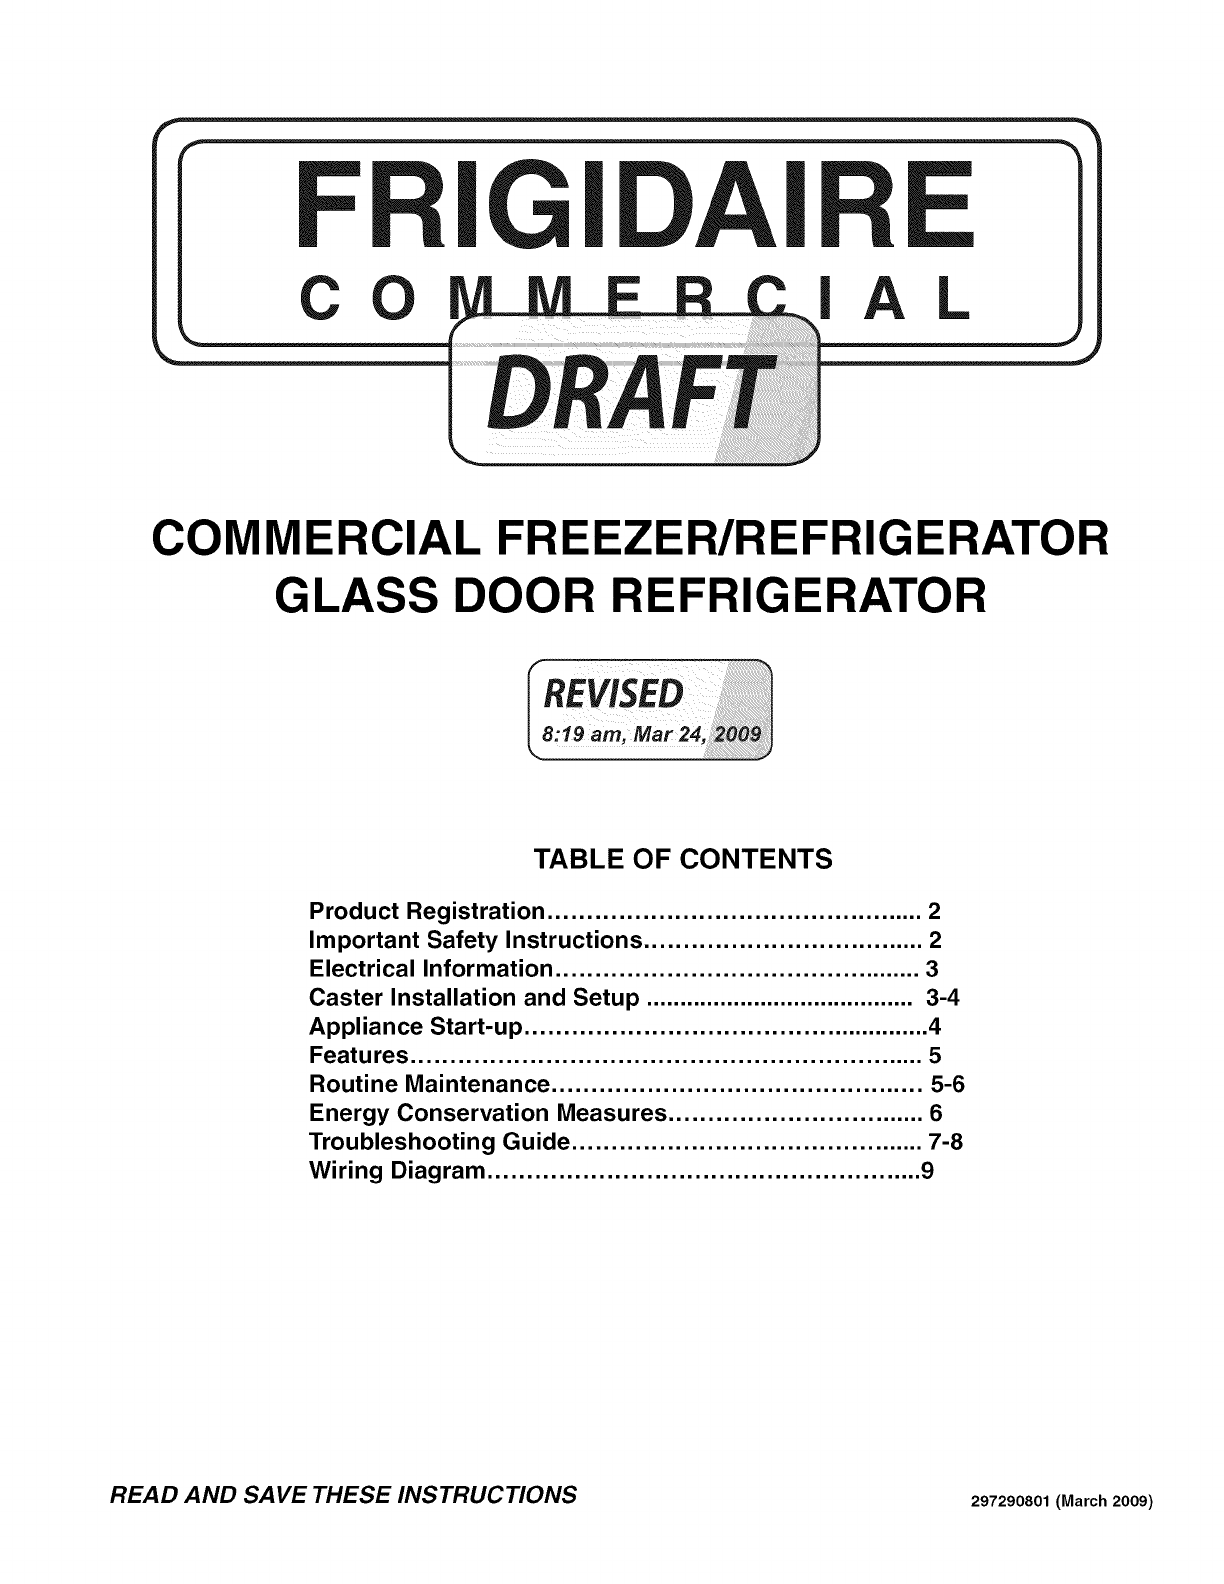 Frigidaire Fcgm201rfb2 User Manual Refrigerator Freezer Manuals And Refrigeration True Wiring Diagram Guides L0911500